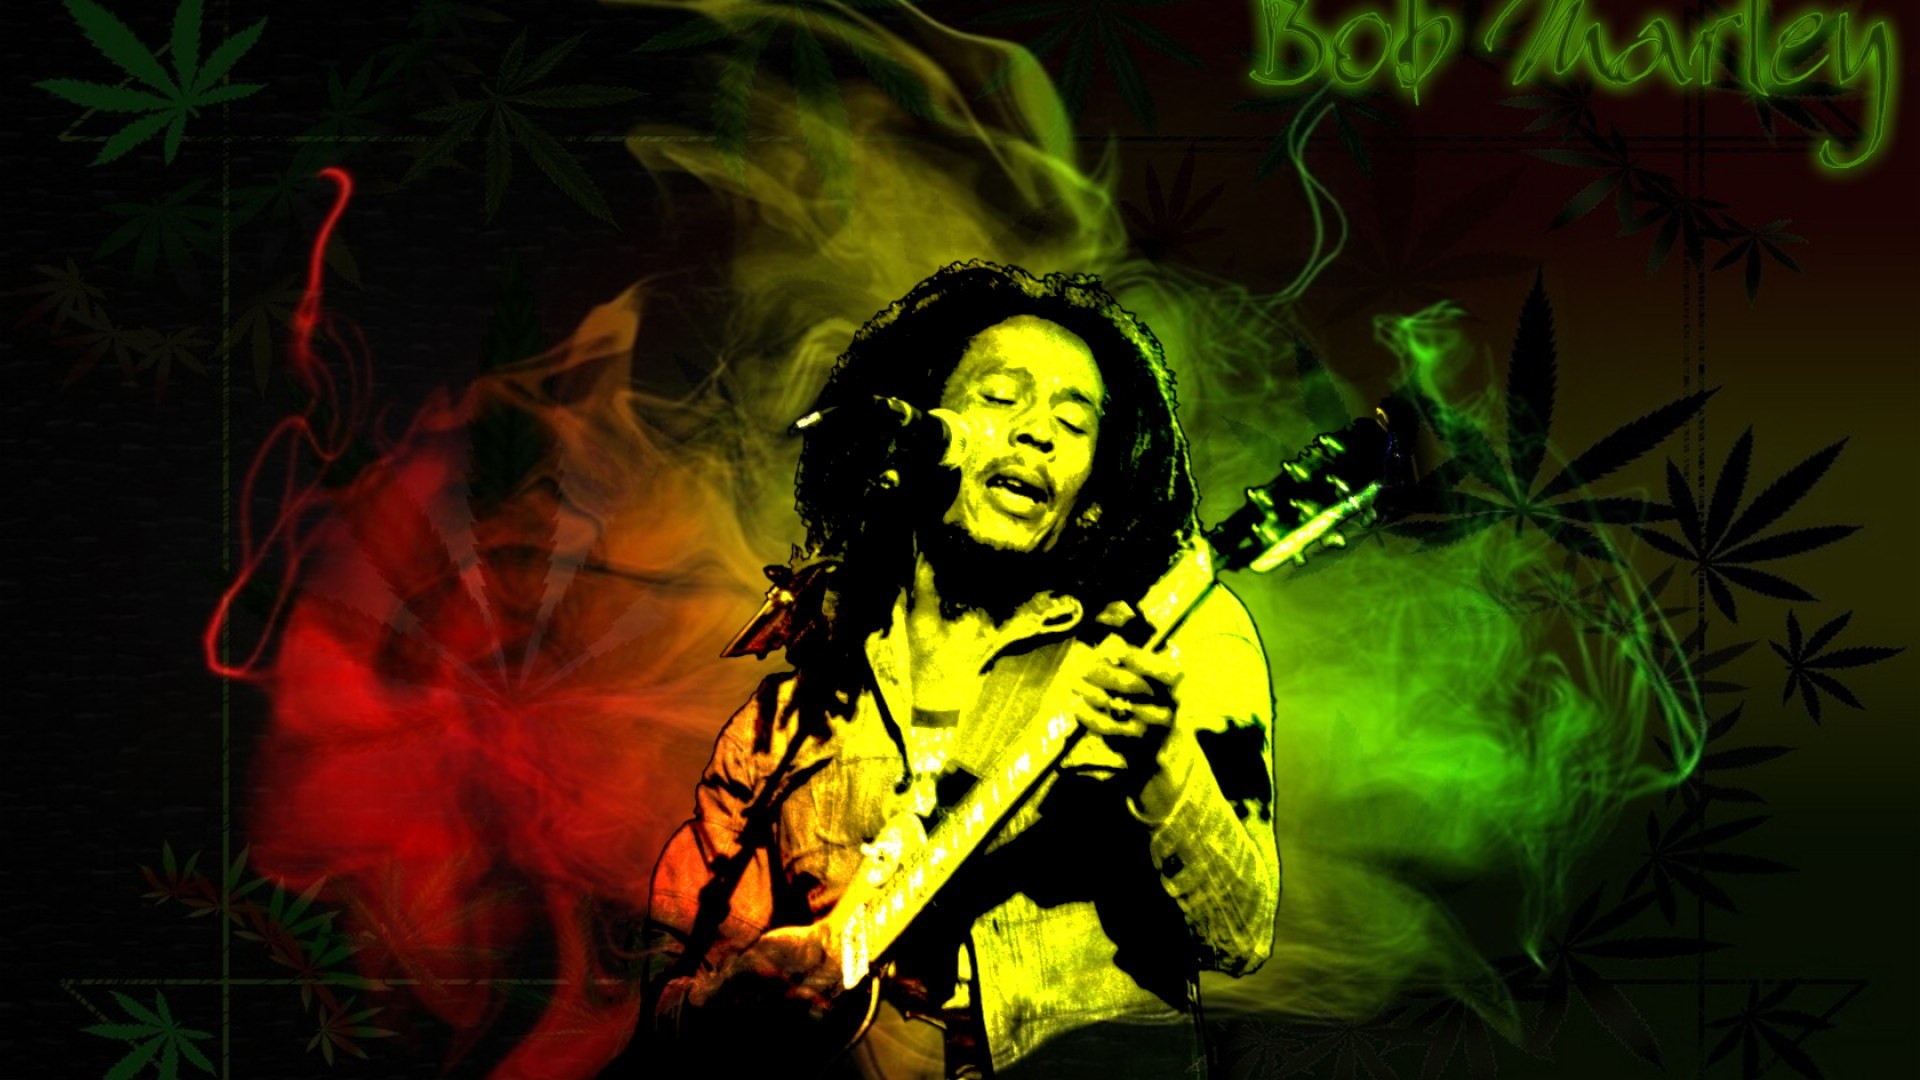 bob-marley-free-images-pictures-wallpaper-wp3803369